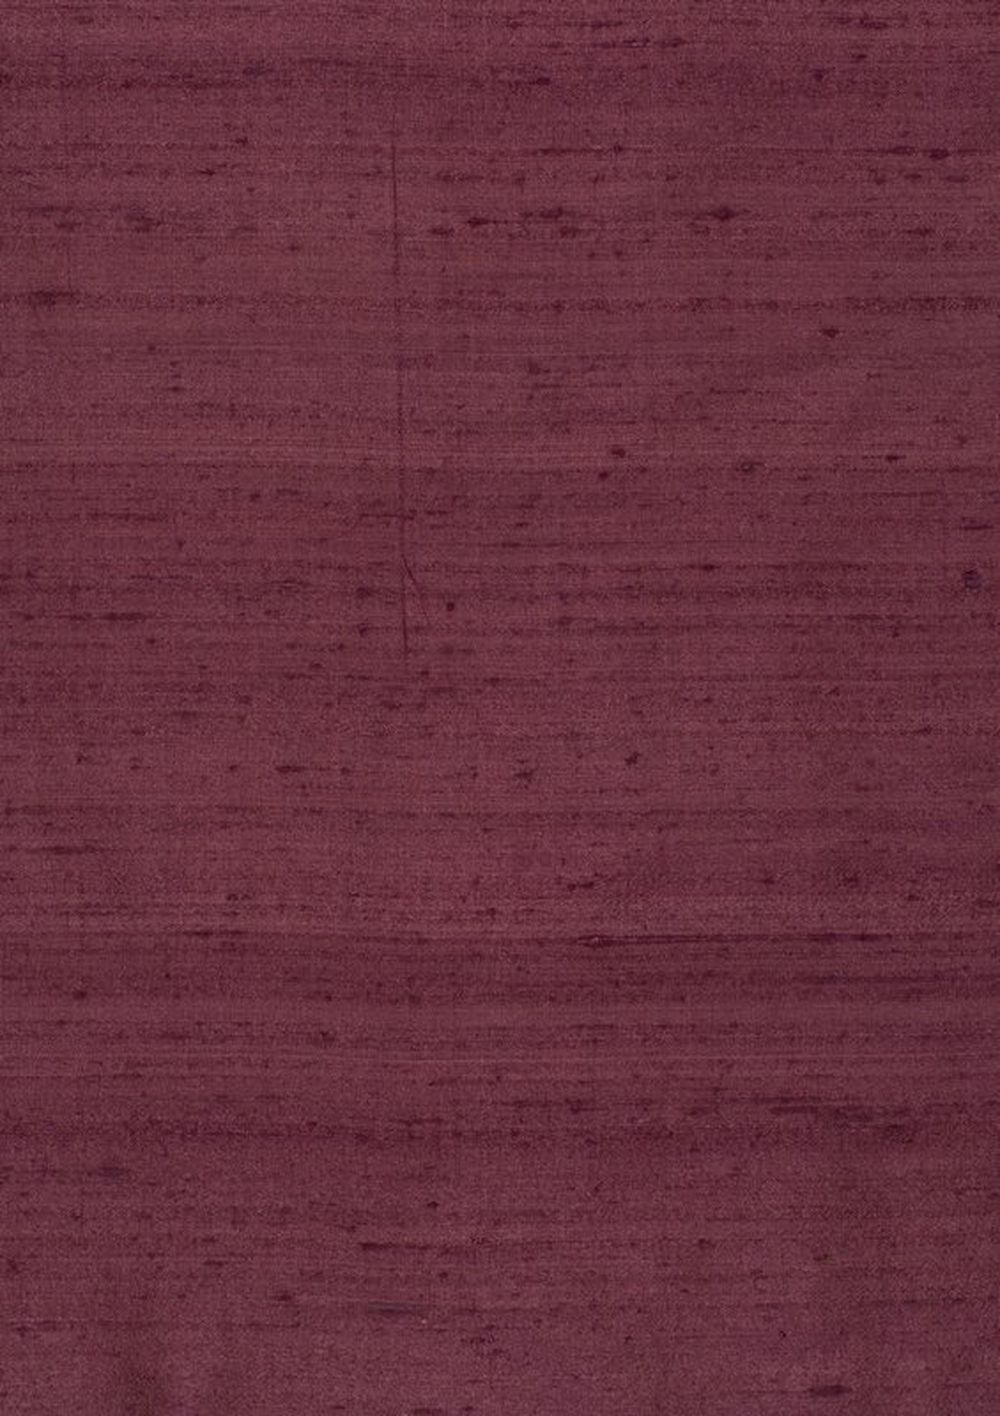 Photo of the fabric Luxury Damson-200 swatch by James Dunlop. Use for Curtains. Style of Plain